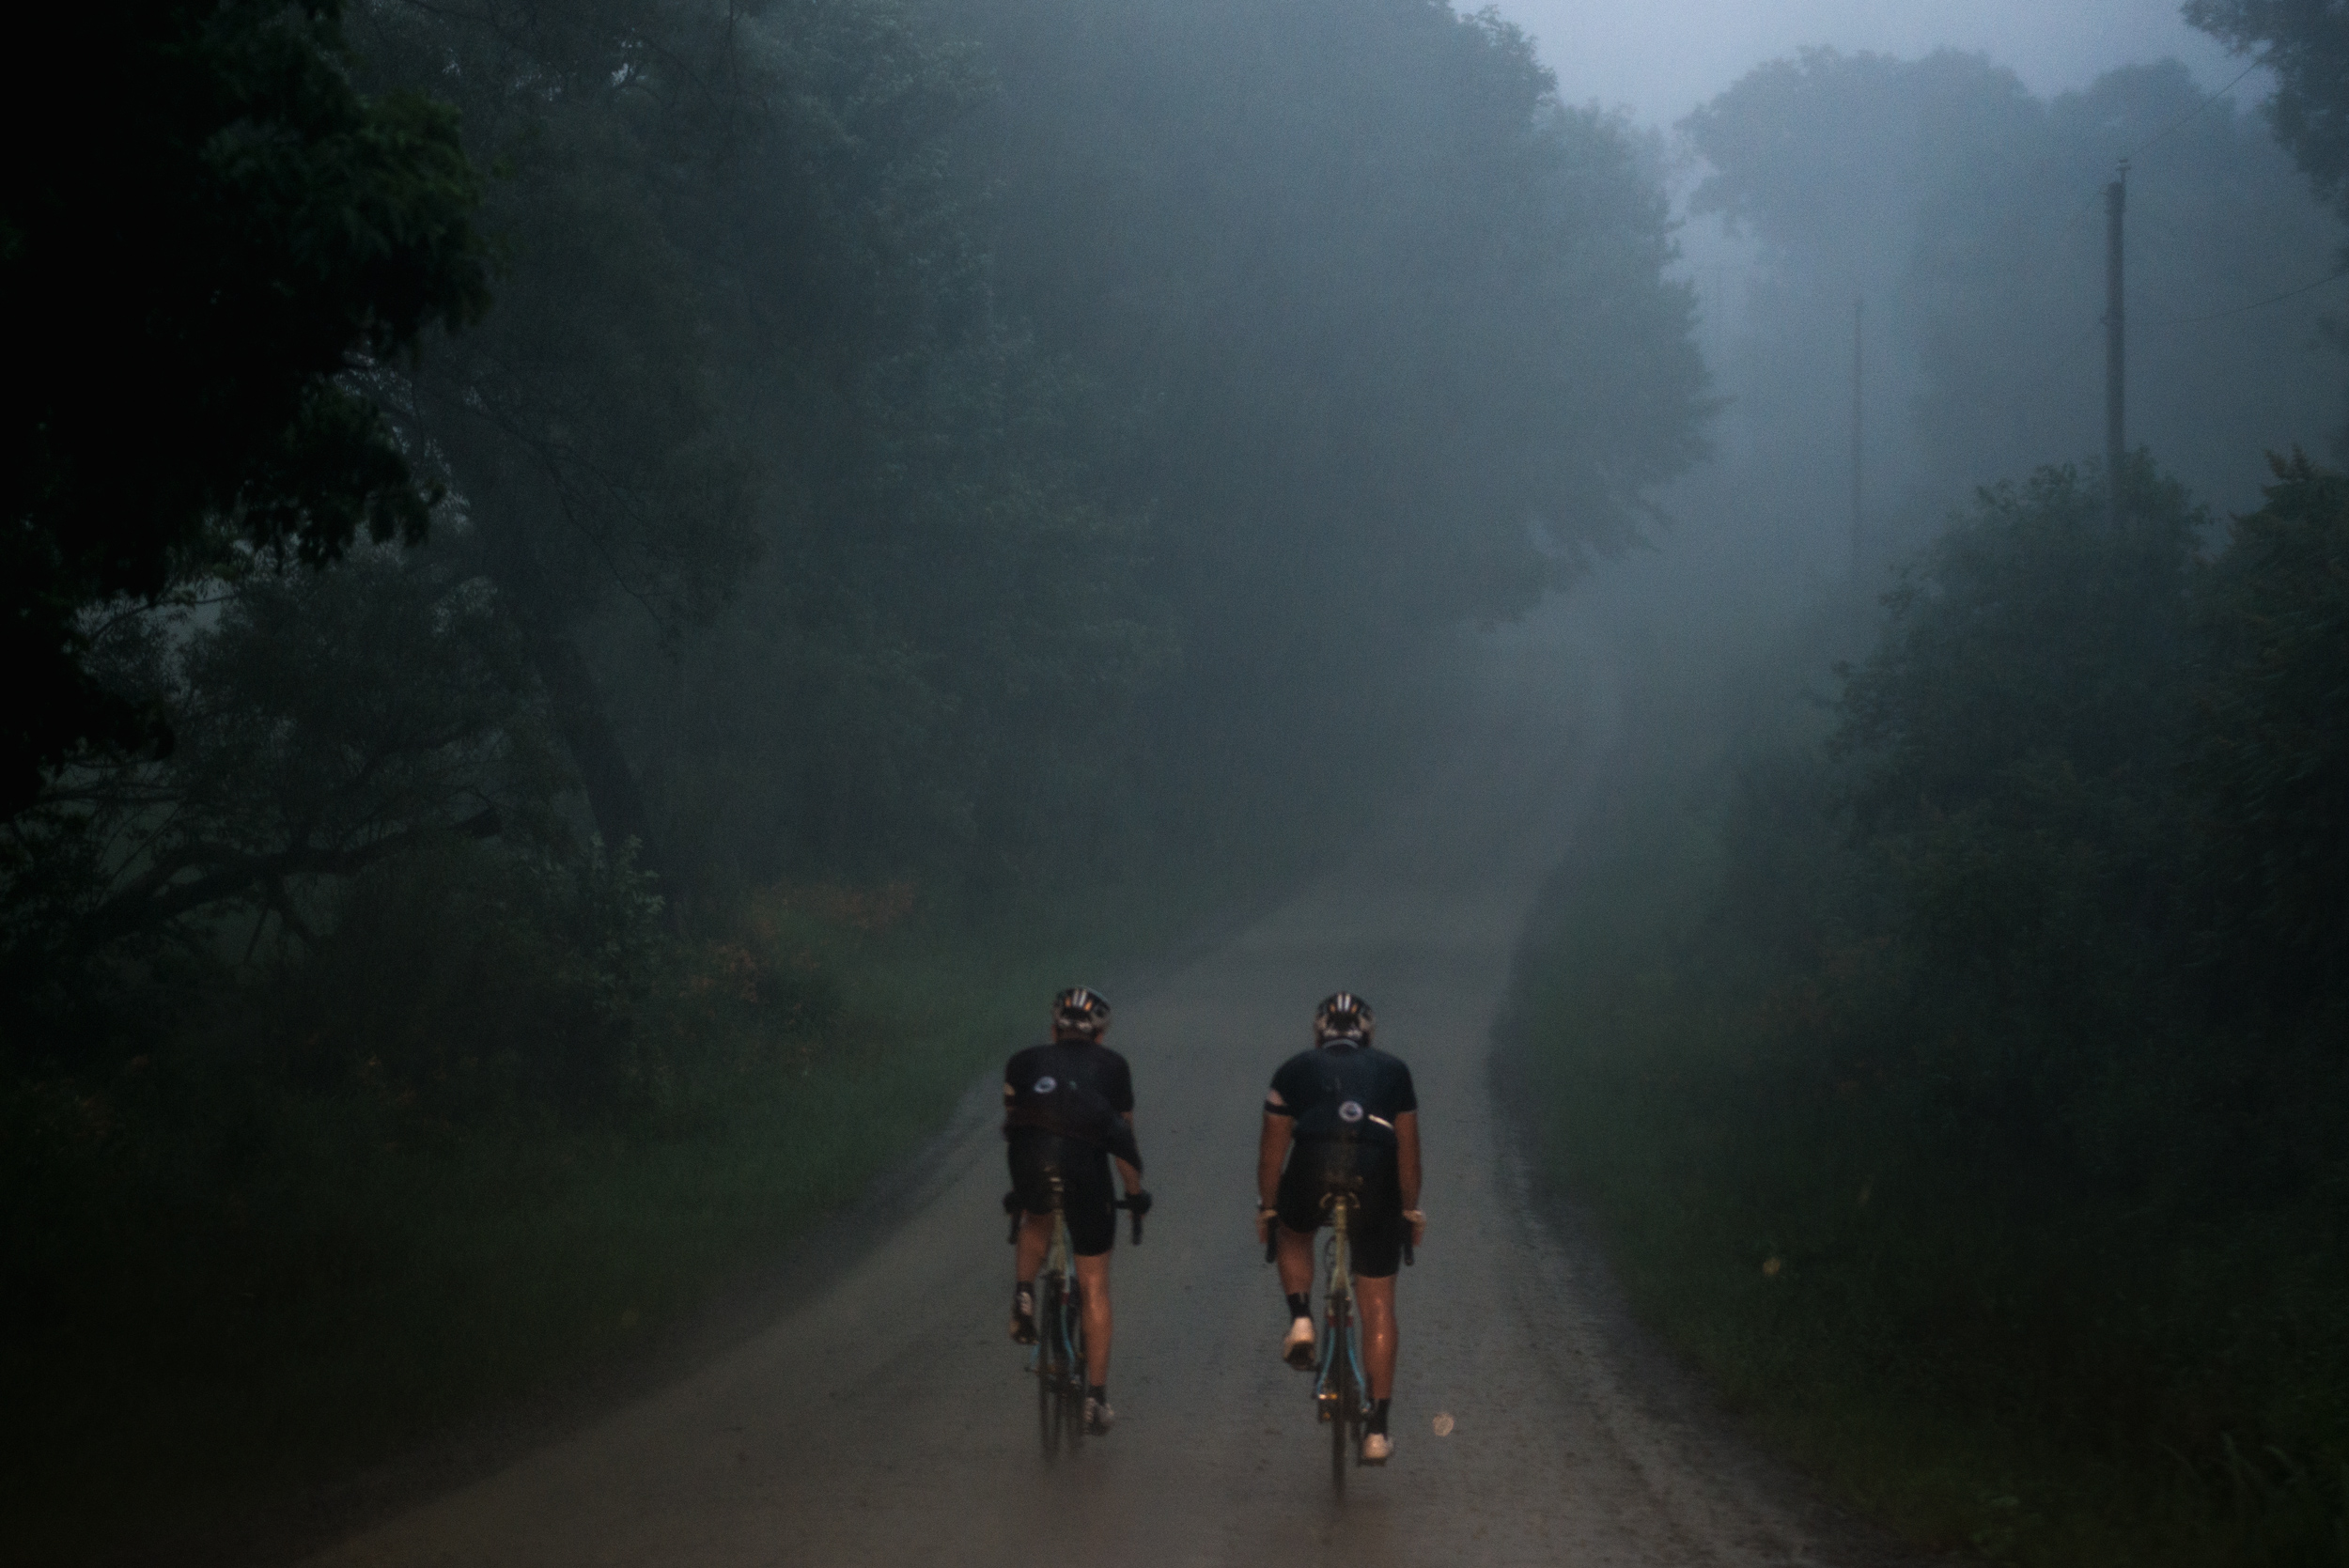 A long day that really only began with the sunset thunderstorm. We rode until 3am and it was not pretty.